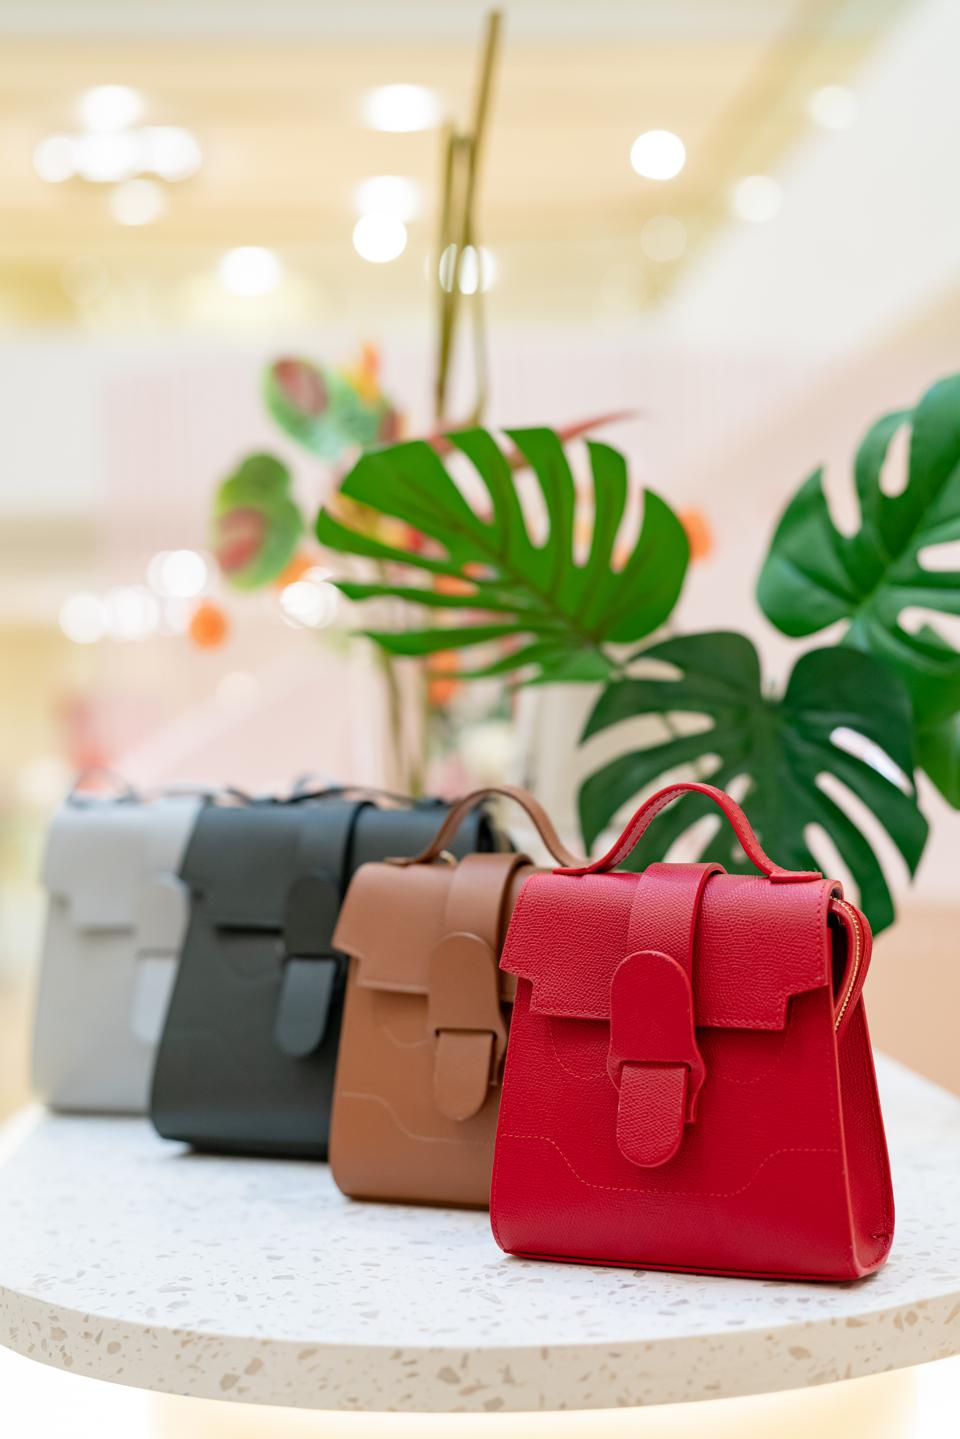 The brand's latest Asia-exclusive, the Alunna bag